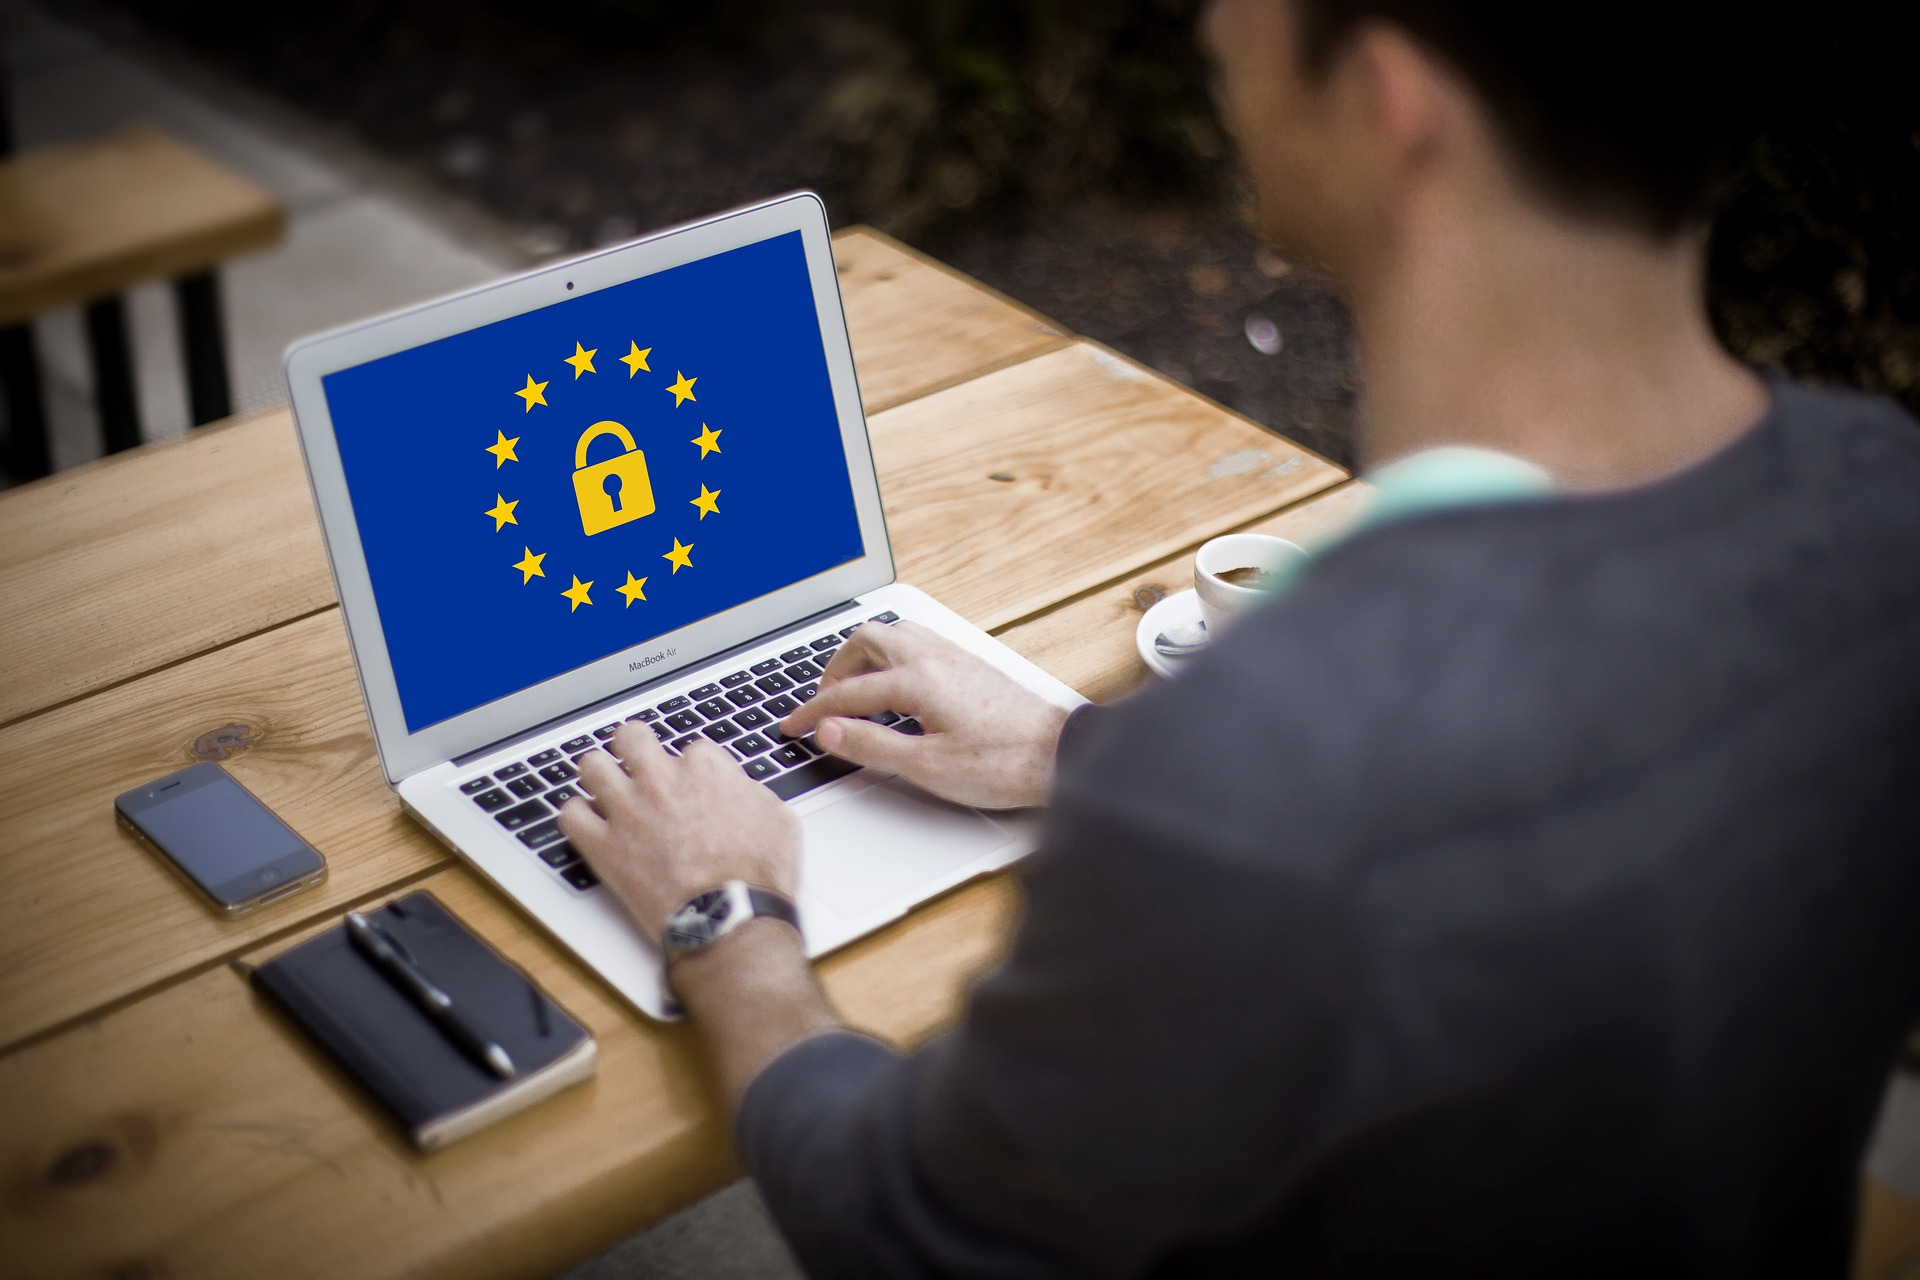 Computer with EU symbol and lock